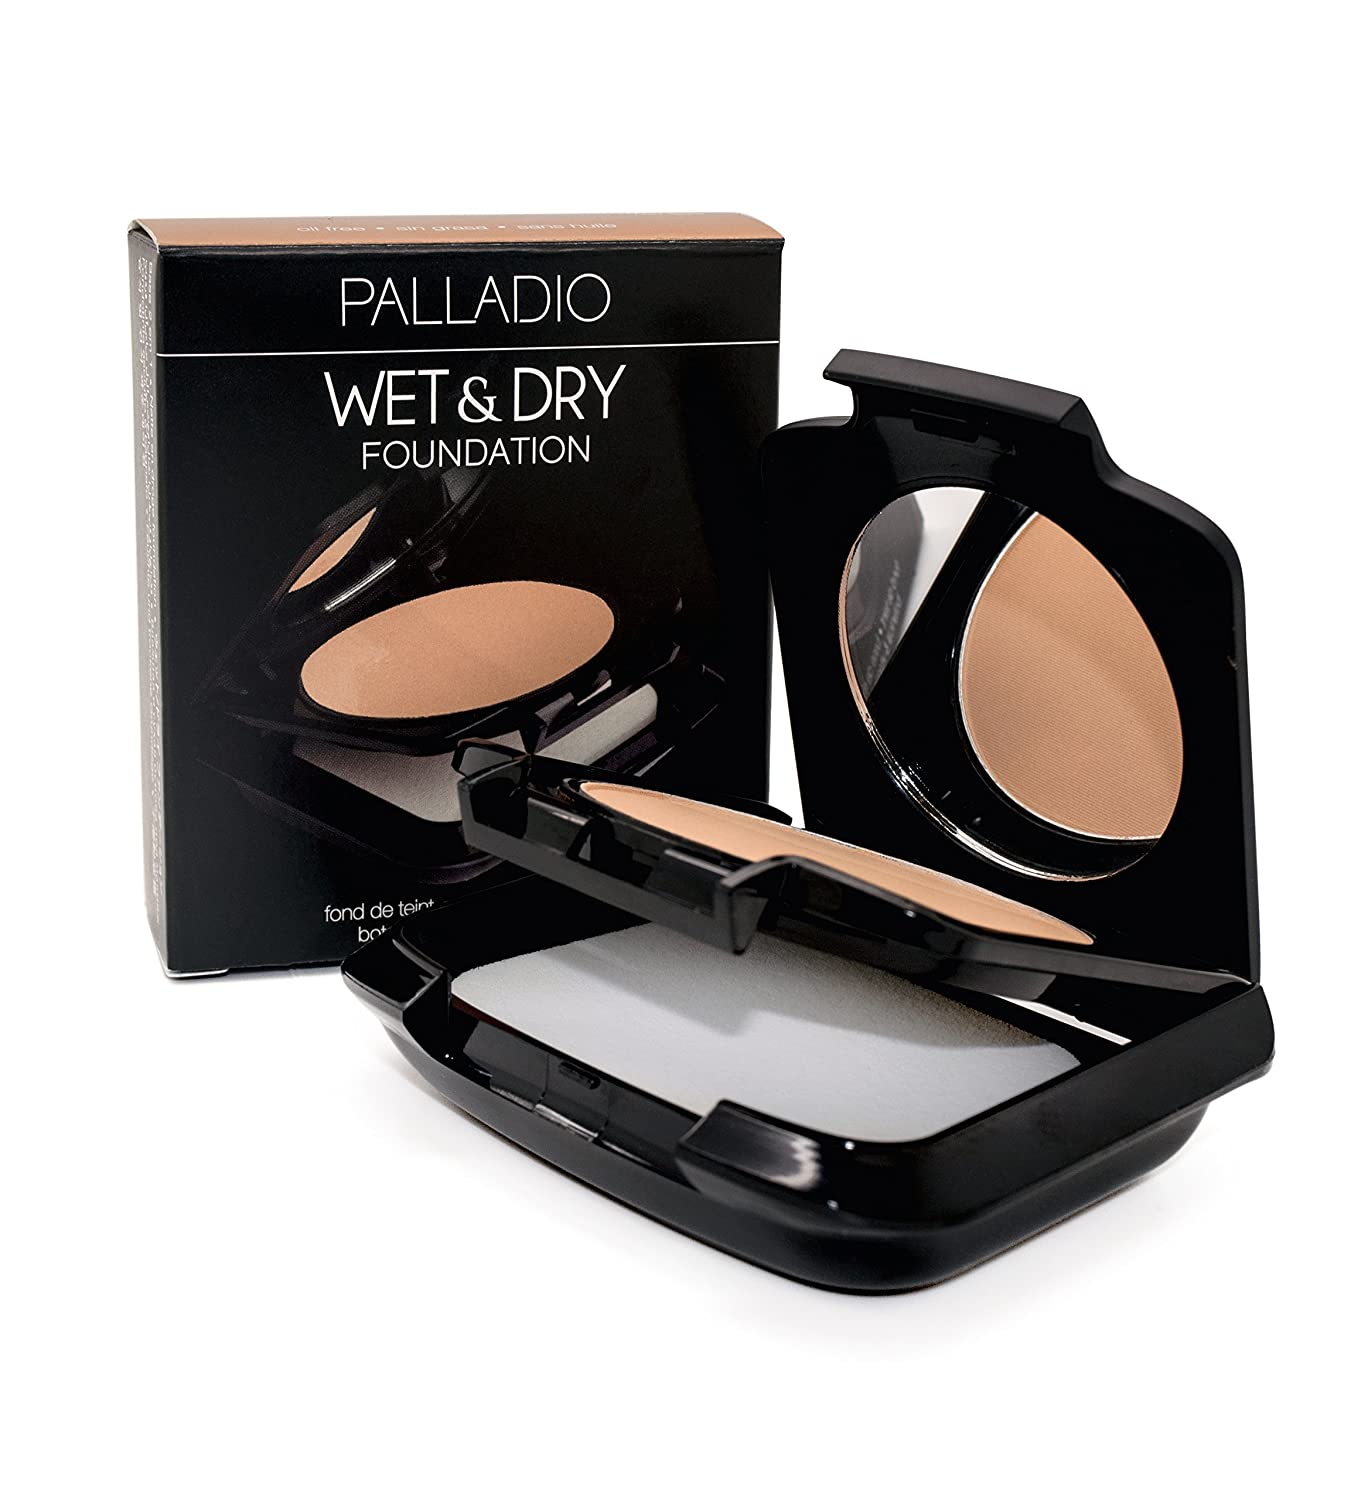 Palladio Dual Wet And Dry Foundation Cypress Beige Bambi Compact Powder Apply For Maximum Full Coverage Or Light Finishing Touchups